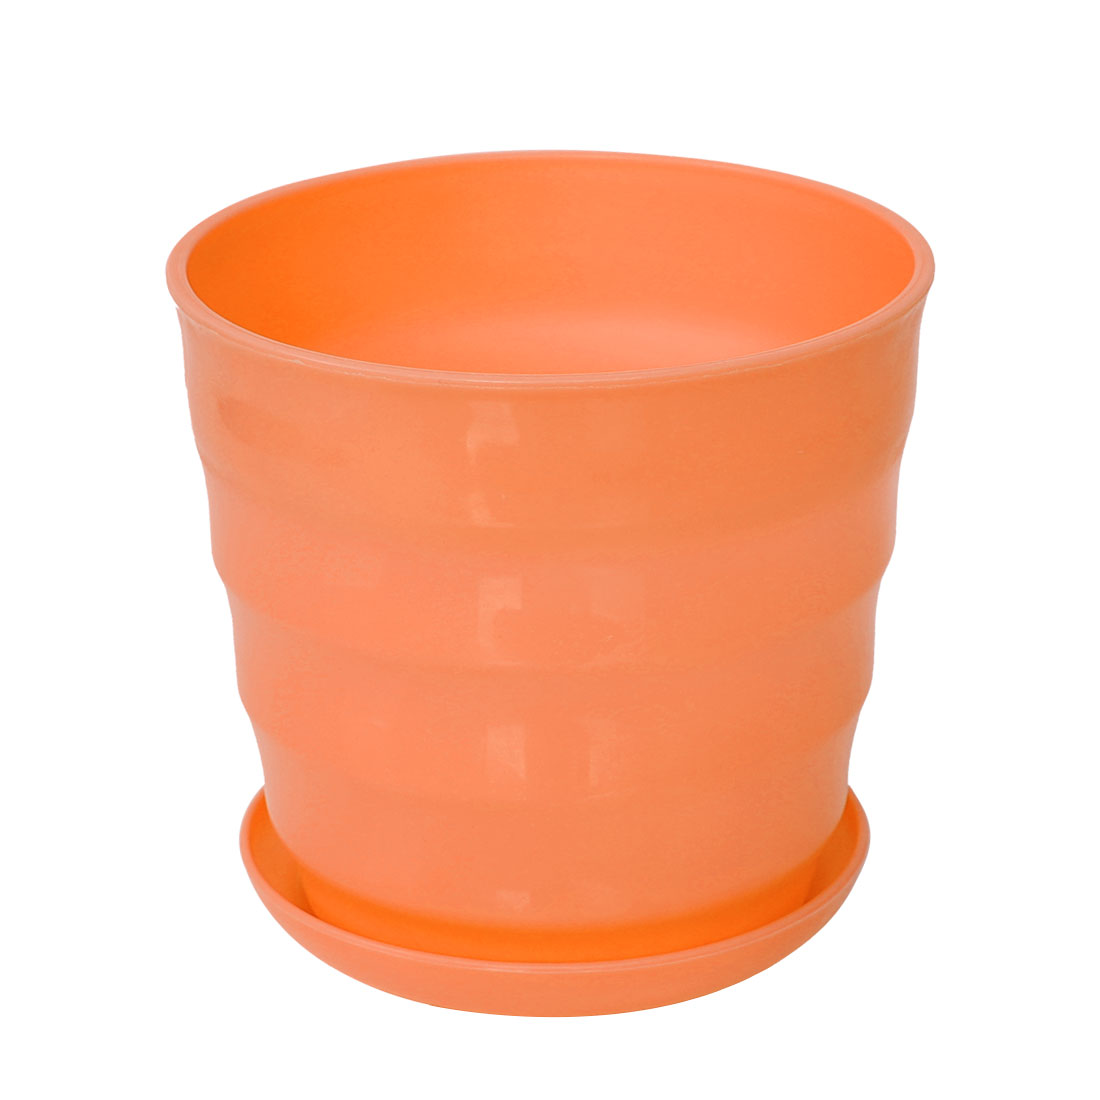 Home Office Desk Plastic Round Plant Planter Holder Flower Pot Orange 13cm Dia